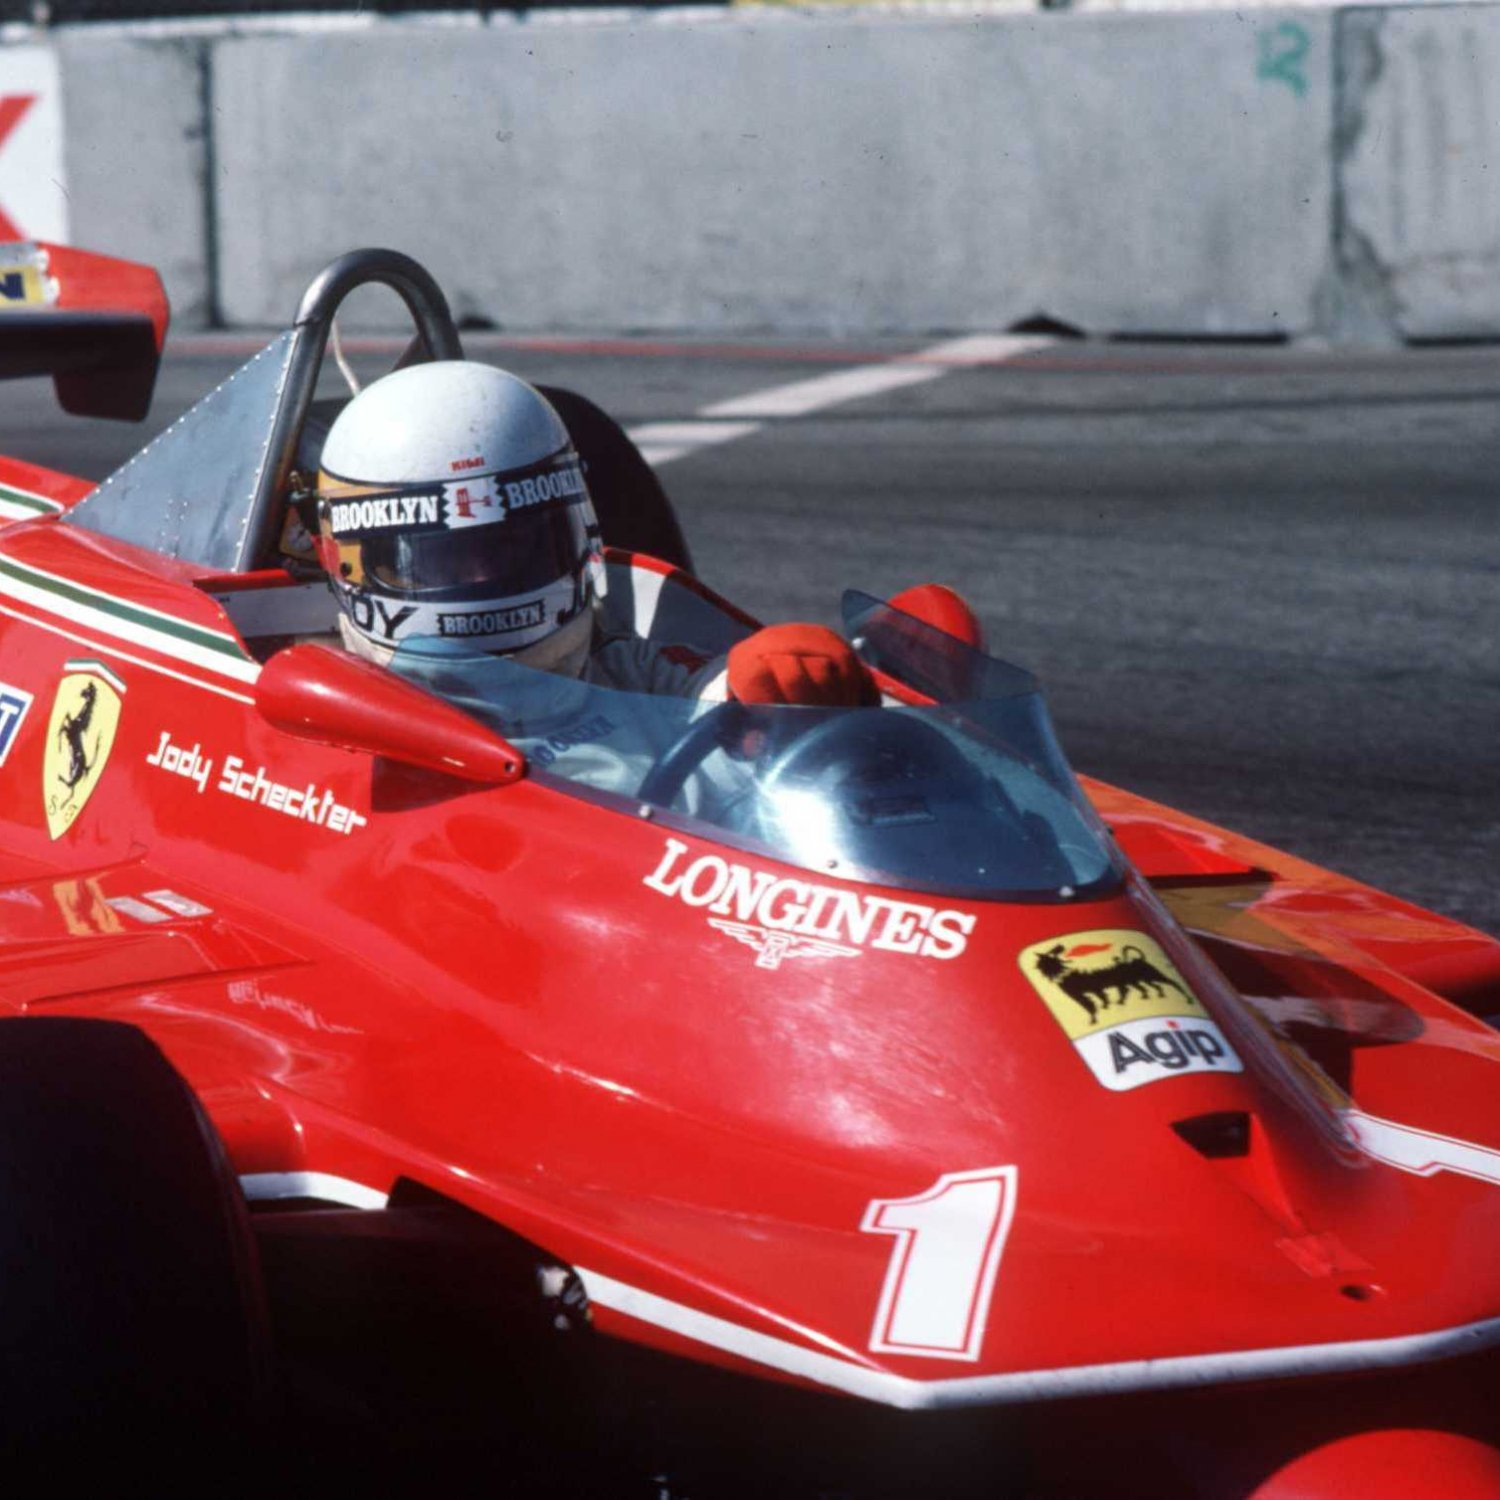 Moments Jody Great | Career 10 in Scheckter